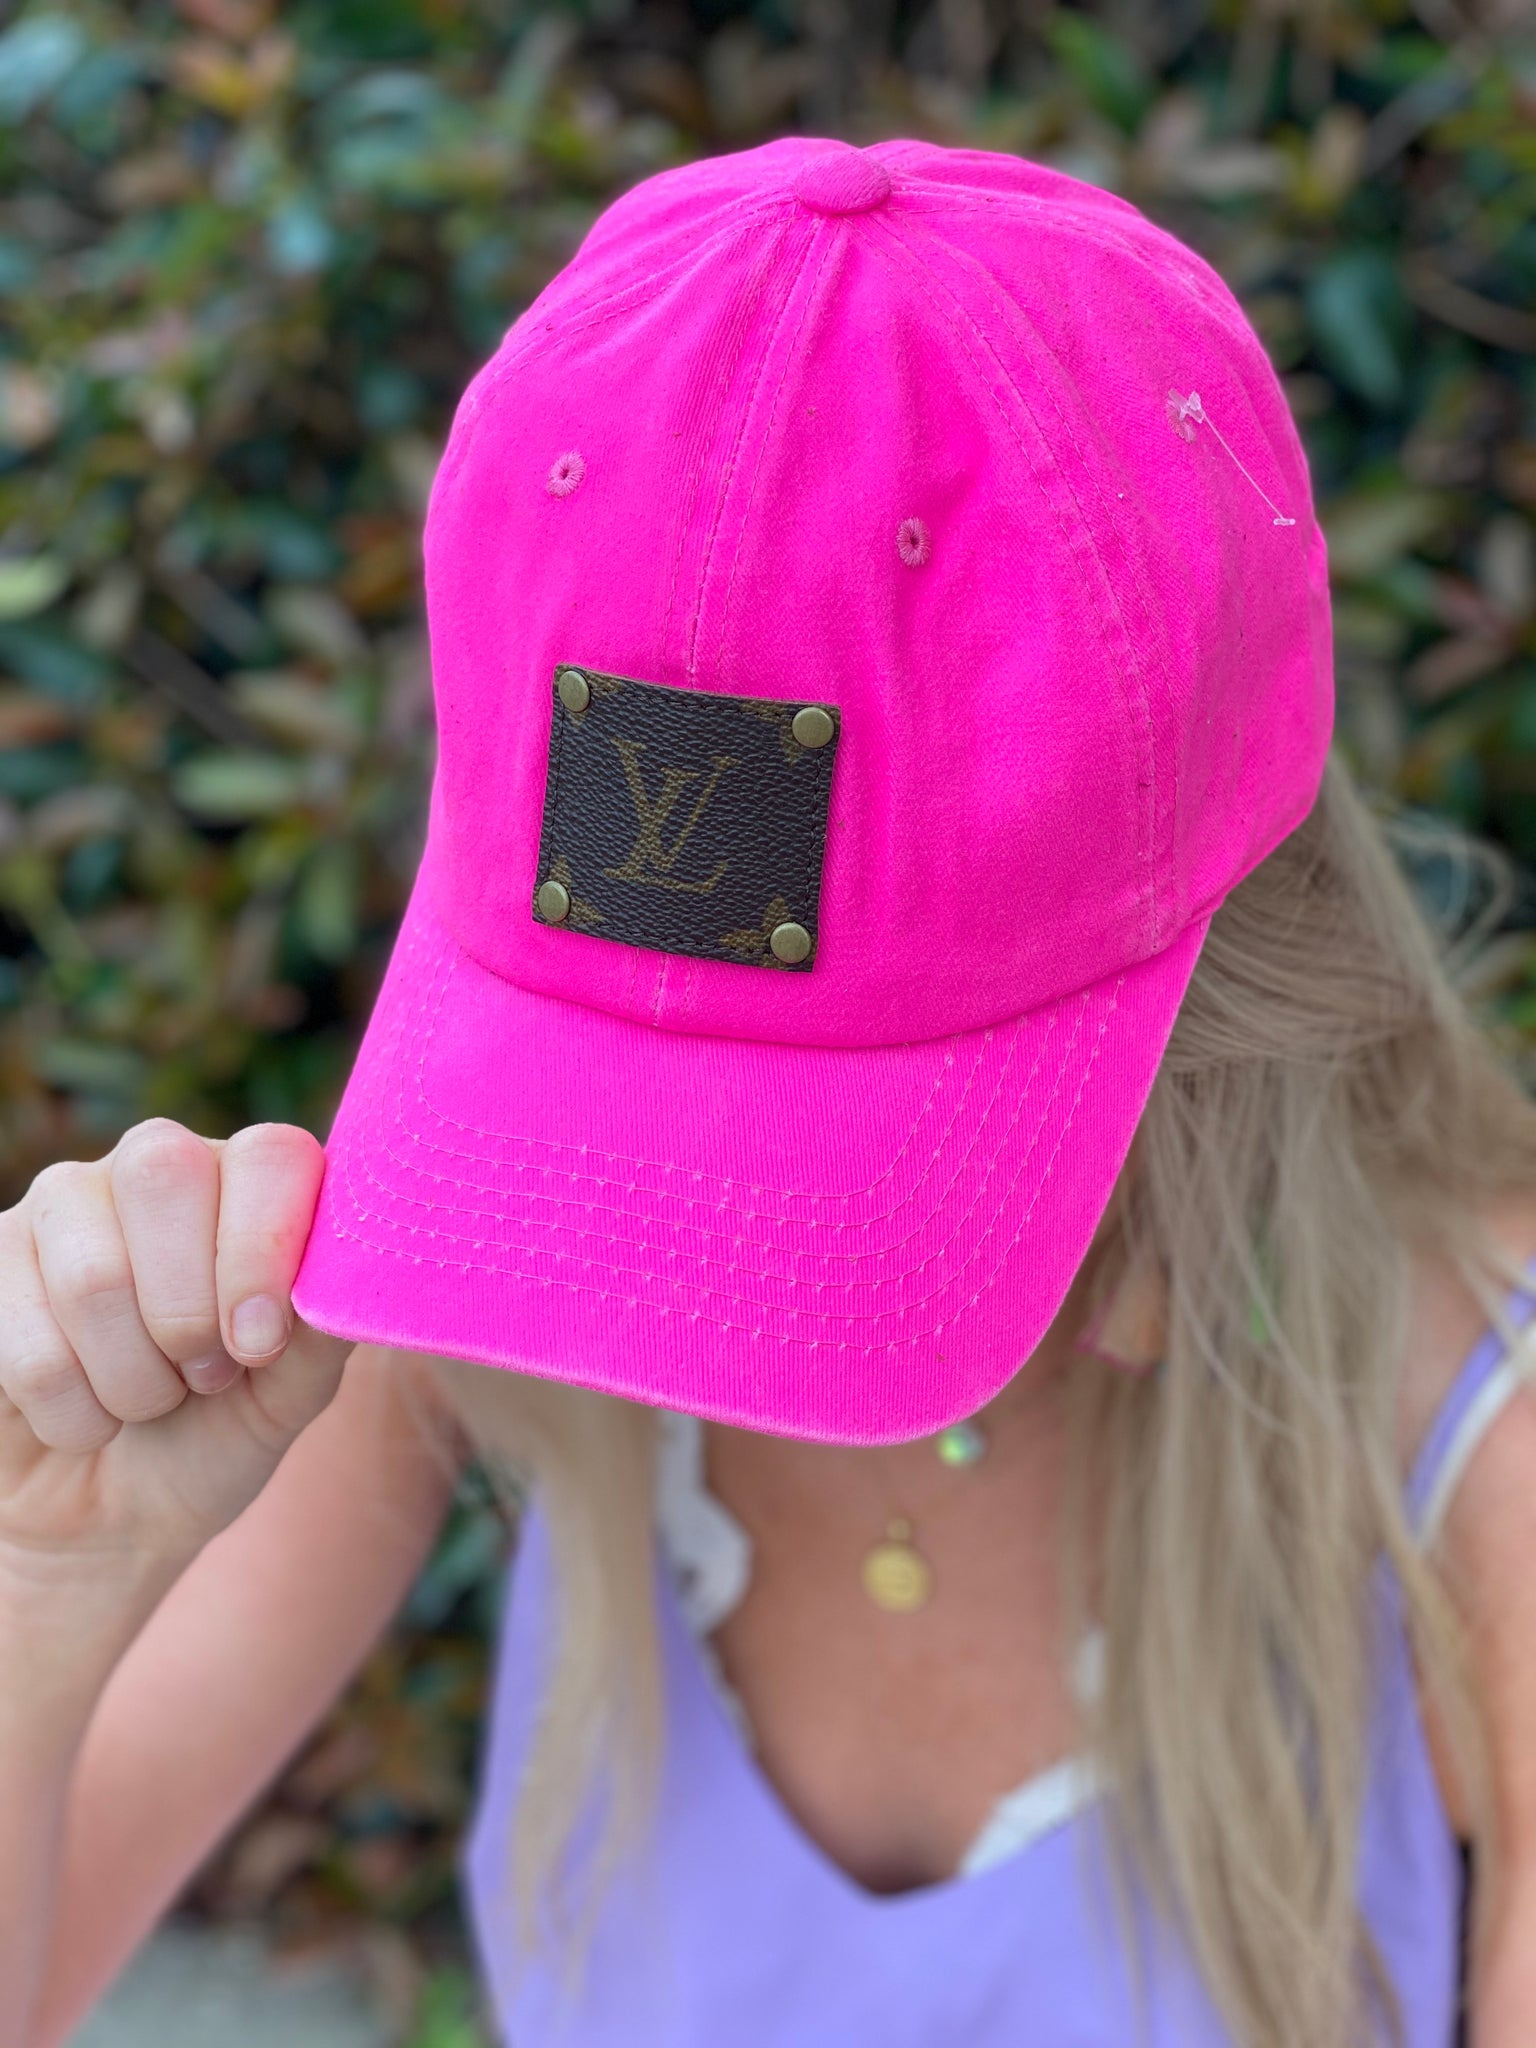 Neon Pink Adjustable LV Patch Ball Cap Hat - Jessi Jayne Boutique